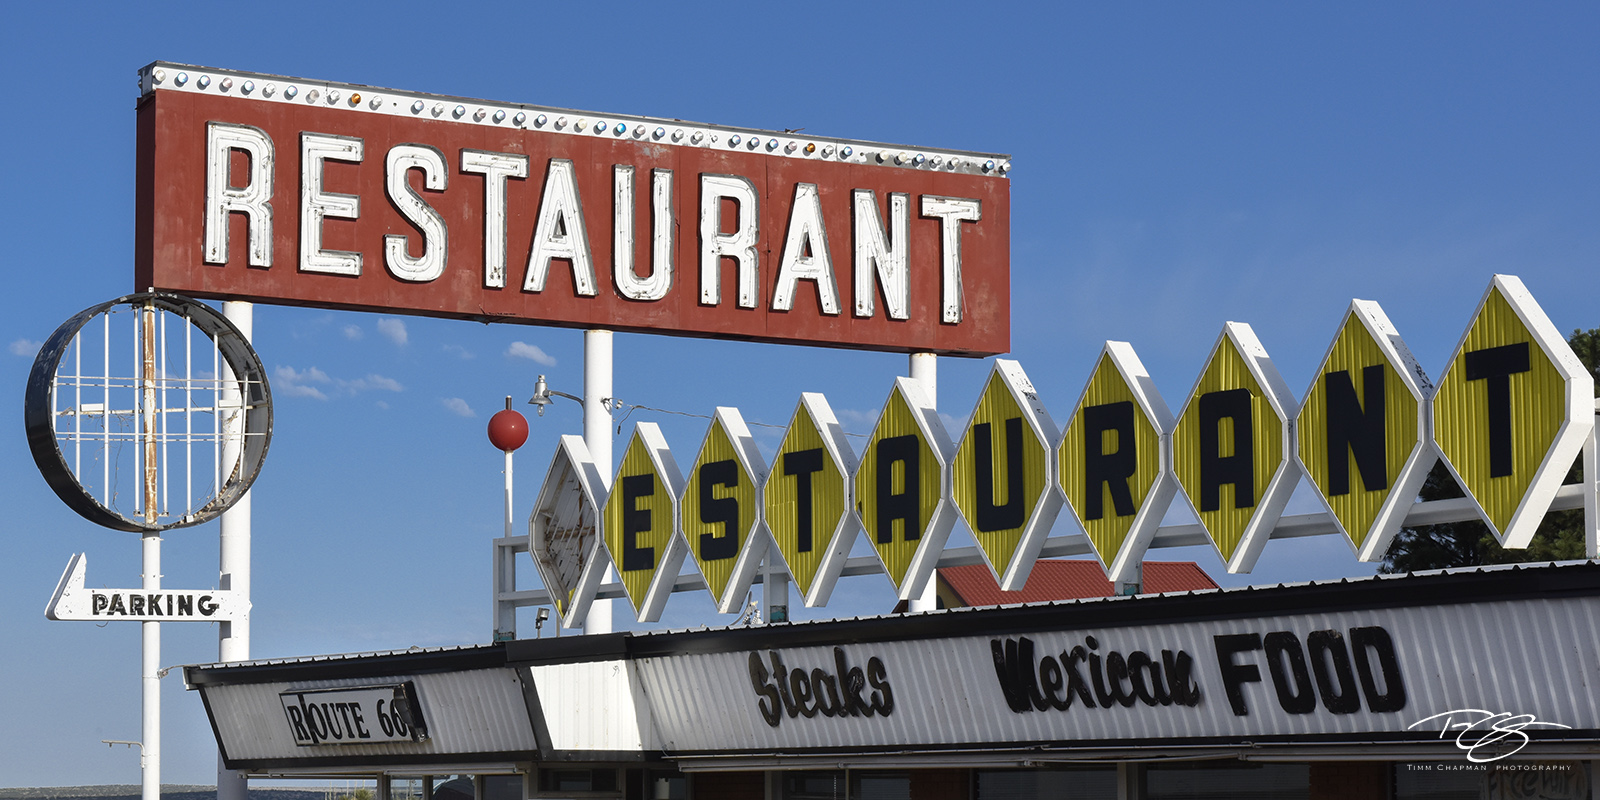 vintage sign, old sign, rust, route 66, sign, dining room, kitchen, restaurant, eatery, diner, cafe, santa rosa, greasy spoon, art, clouds, red, blue, the missing r, mexican food, panorama, photo